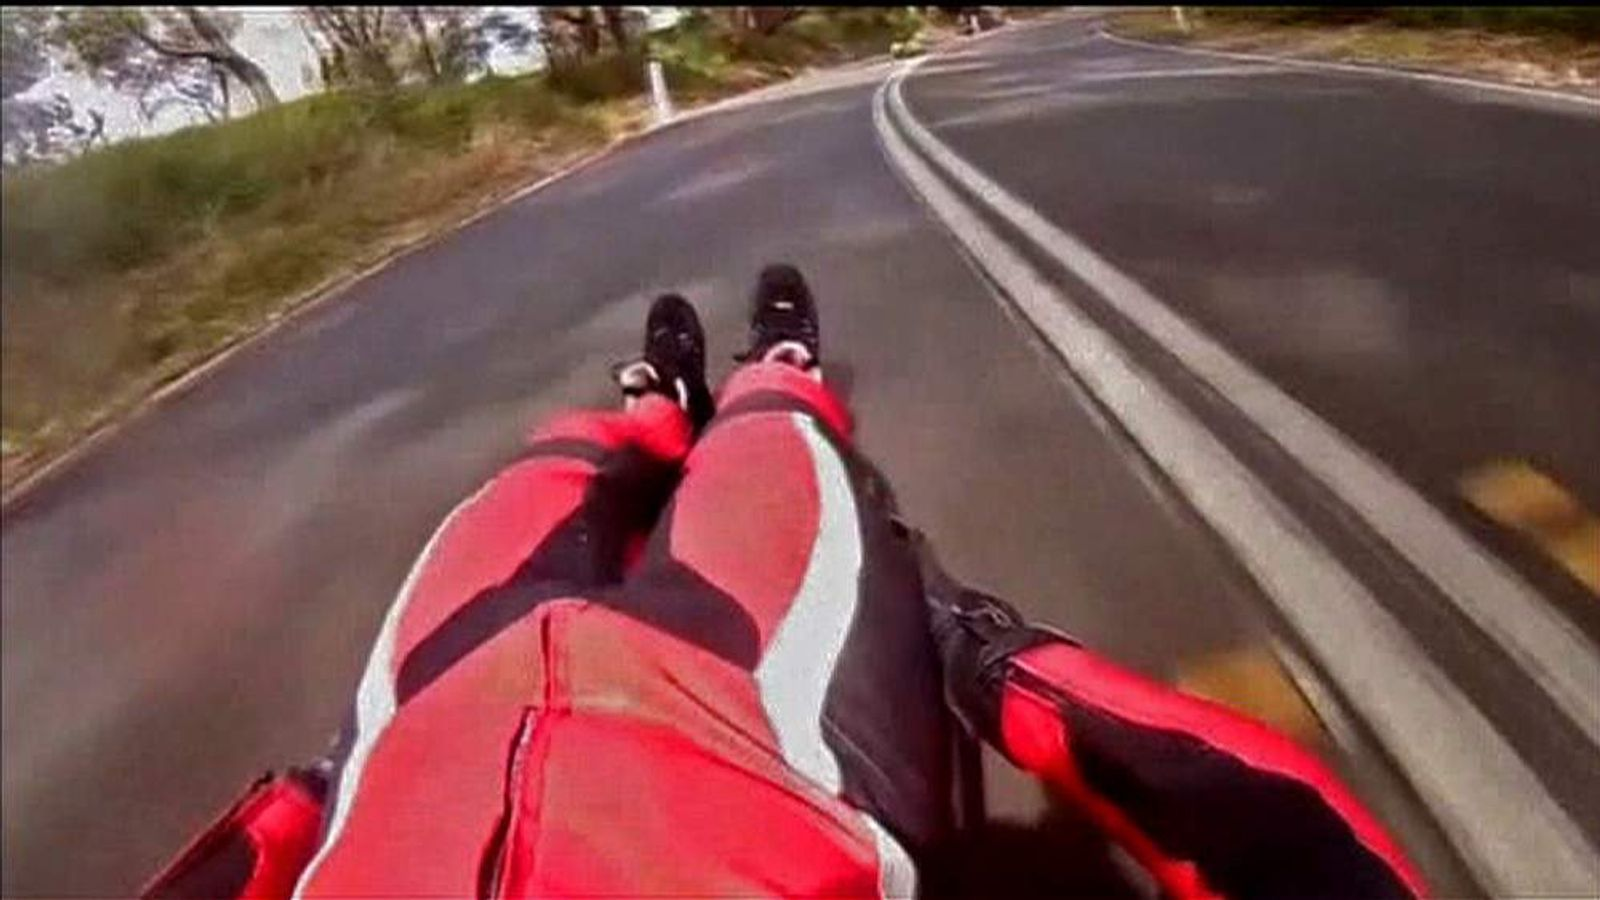 Luge Gifi Racer Hoping To Set Street Luge Speed Record